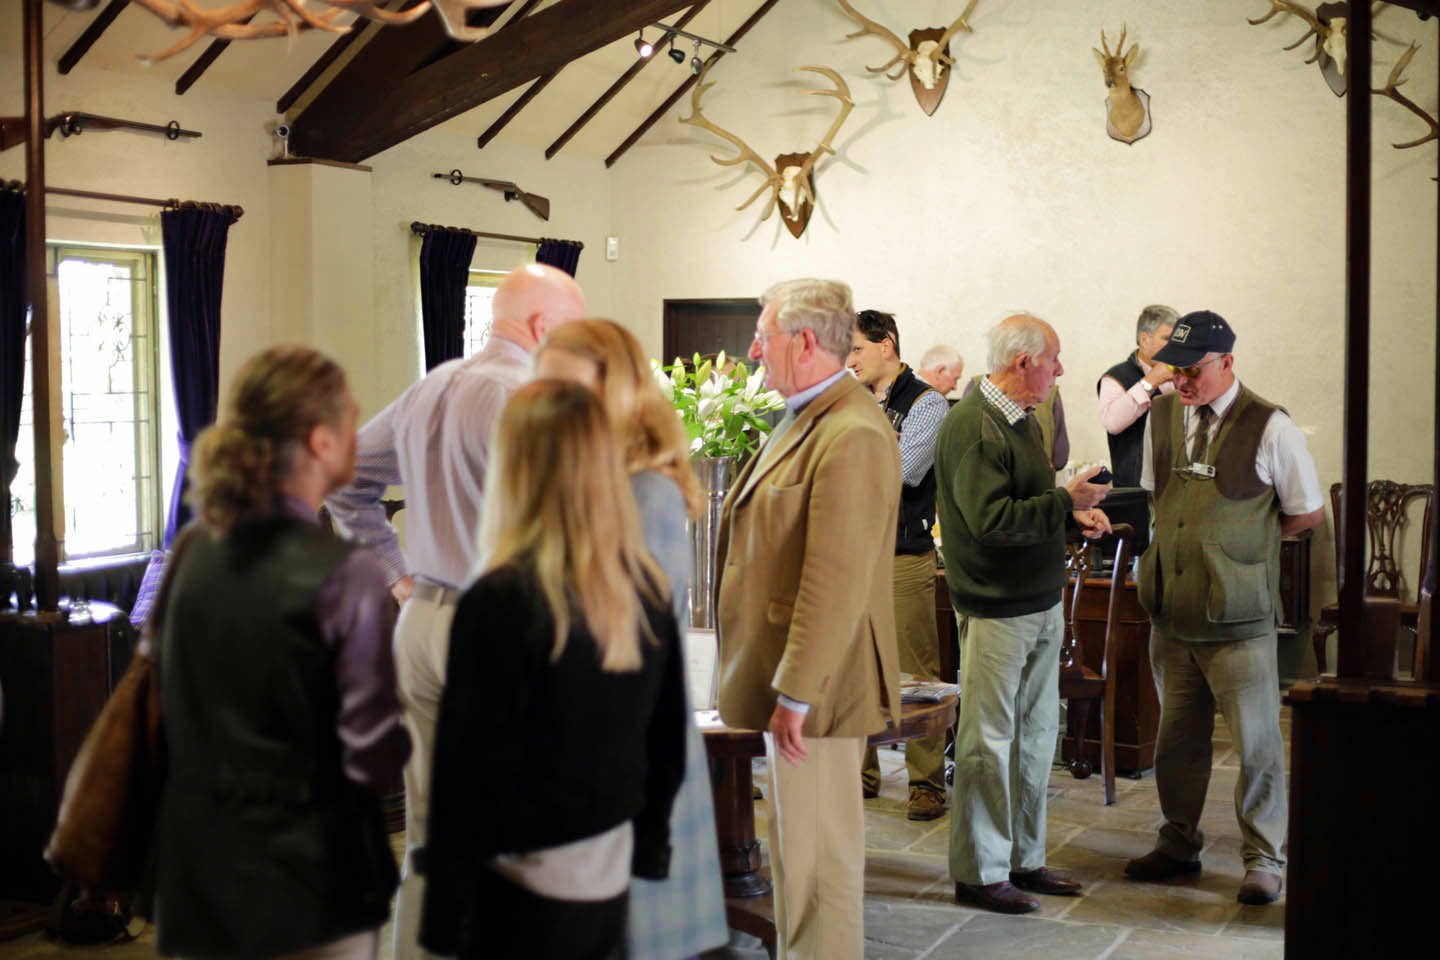 Customers gathering before a shoot at Lady's Wood Shooting School